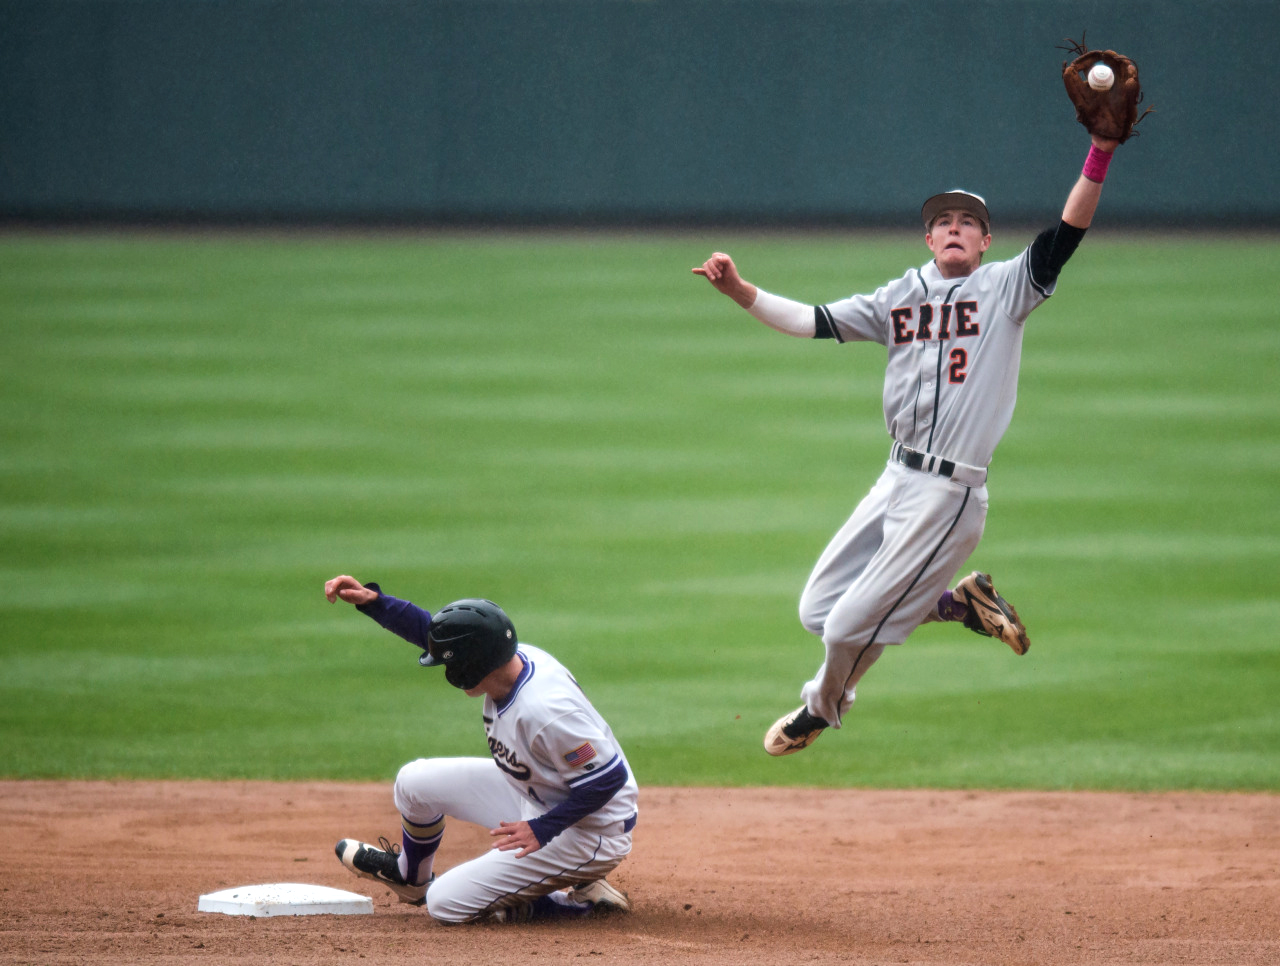 Erie's Josh Crites leaps for the ball as Holy Family's Wayne Rode slides into second base during the game at Coors Field in Denver, Colo.